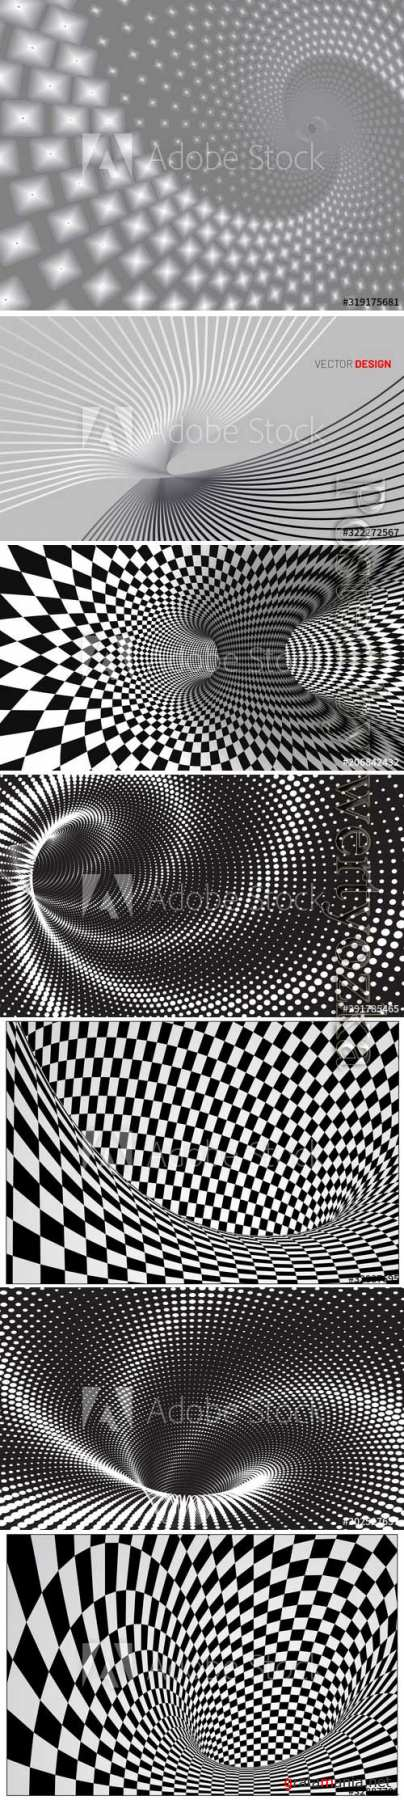 Dotted halftone vector spiral pattern, squares space view